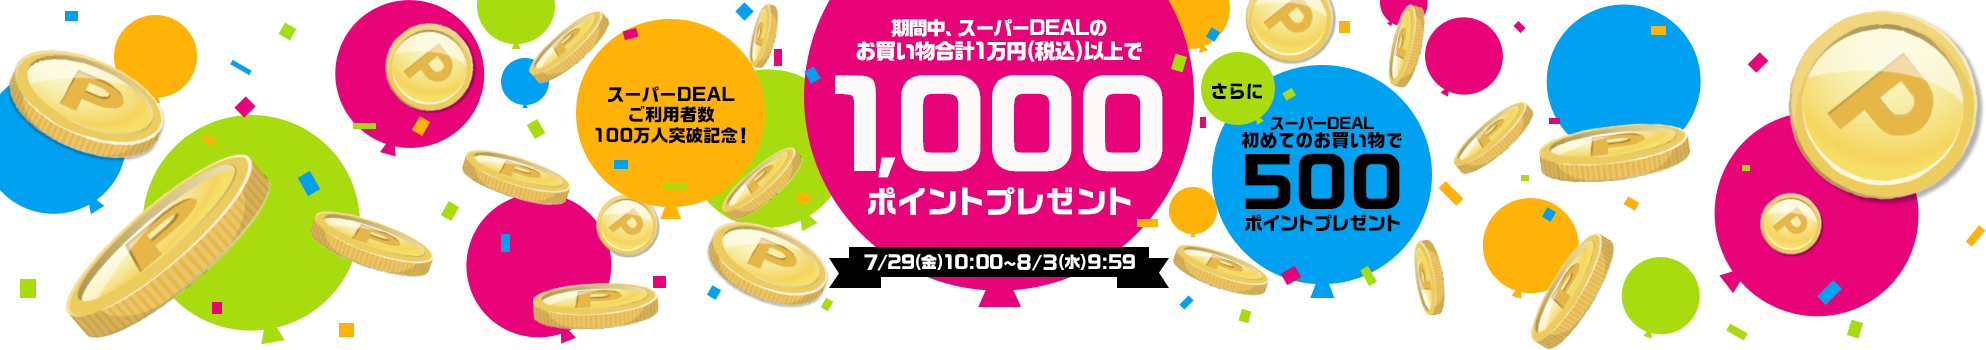 http://event.rakuten.co.jp/superdeal/_pc/img/common/bg_banner_event.png